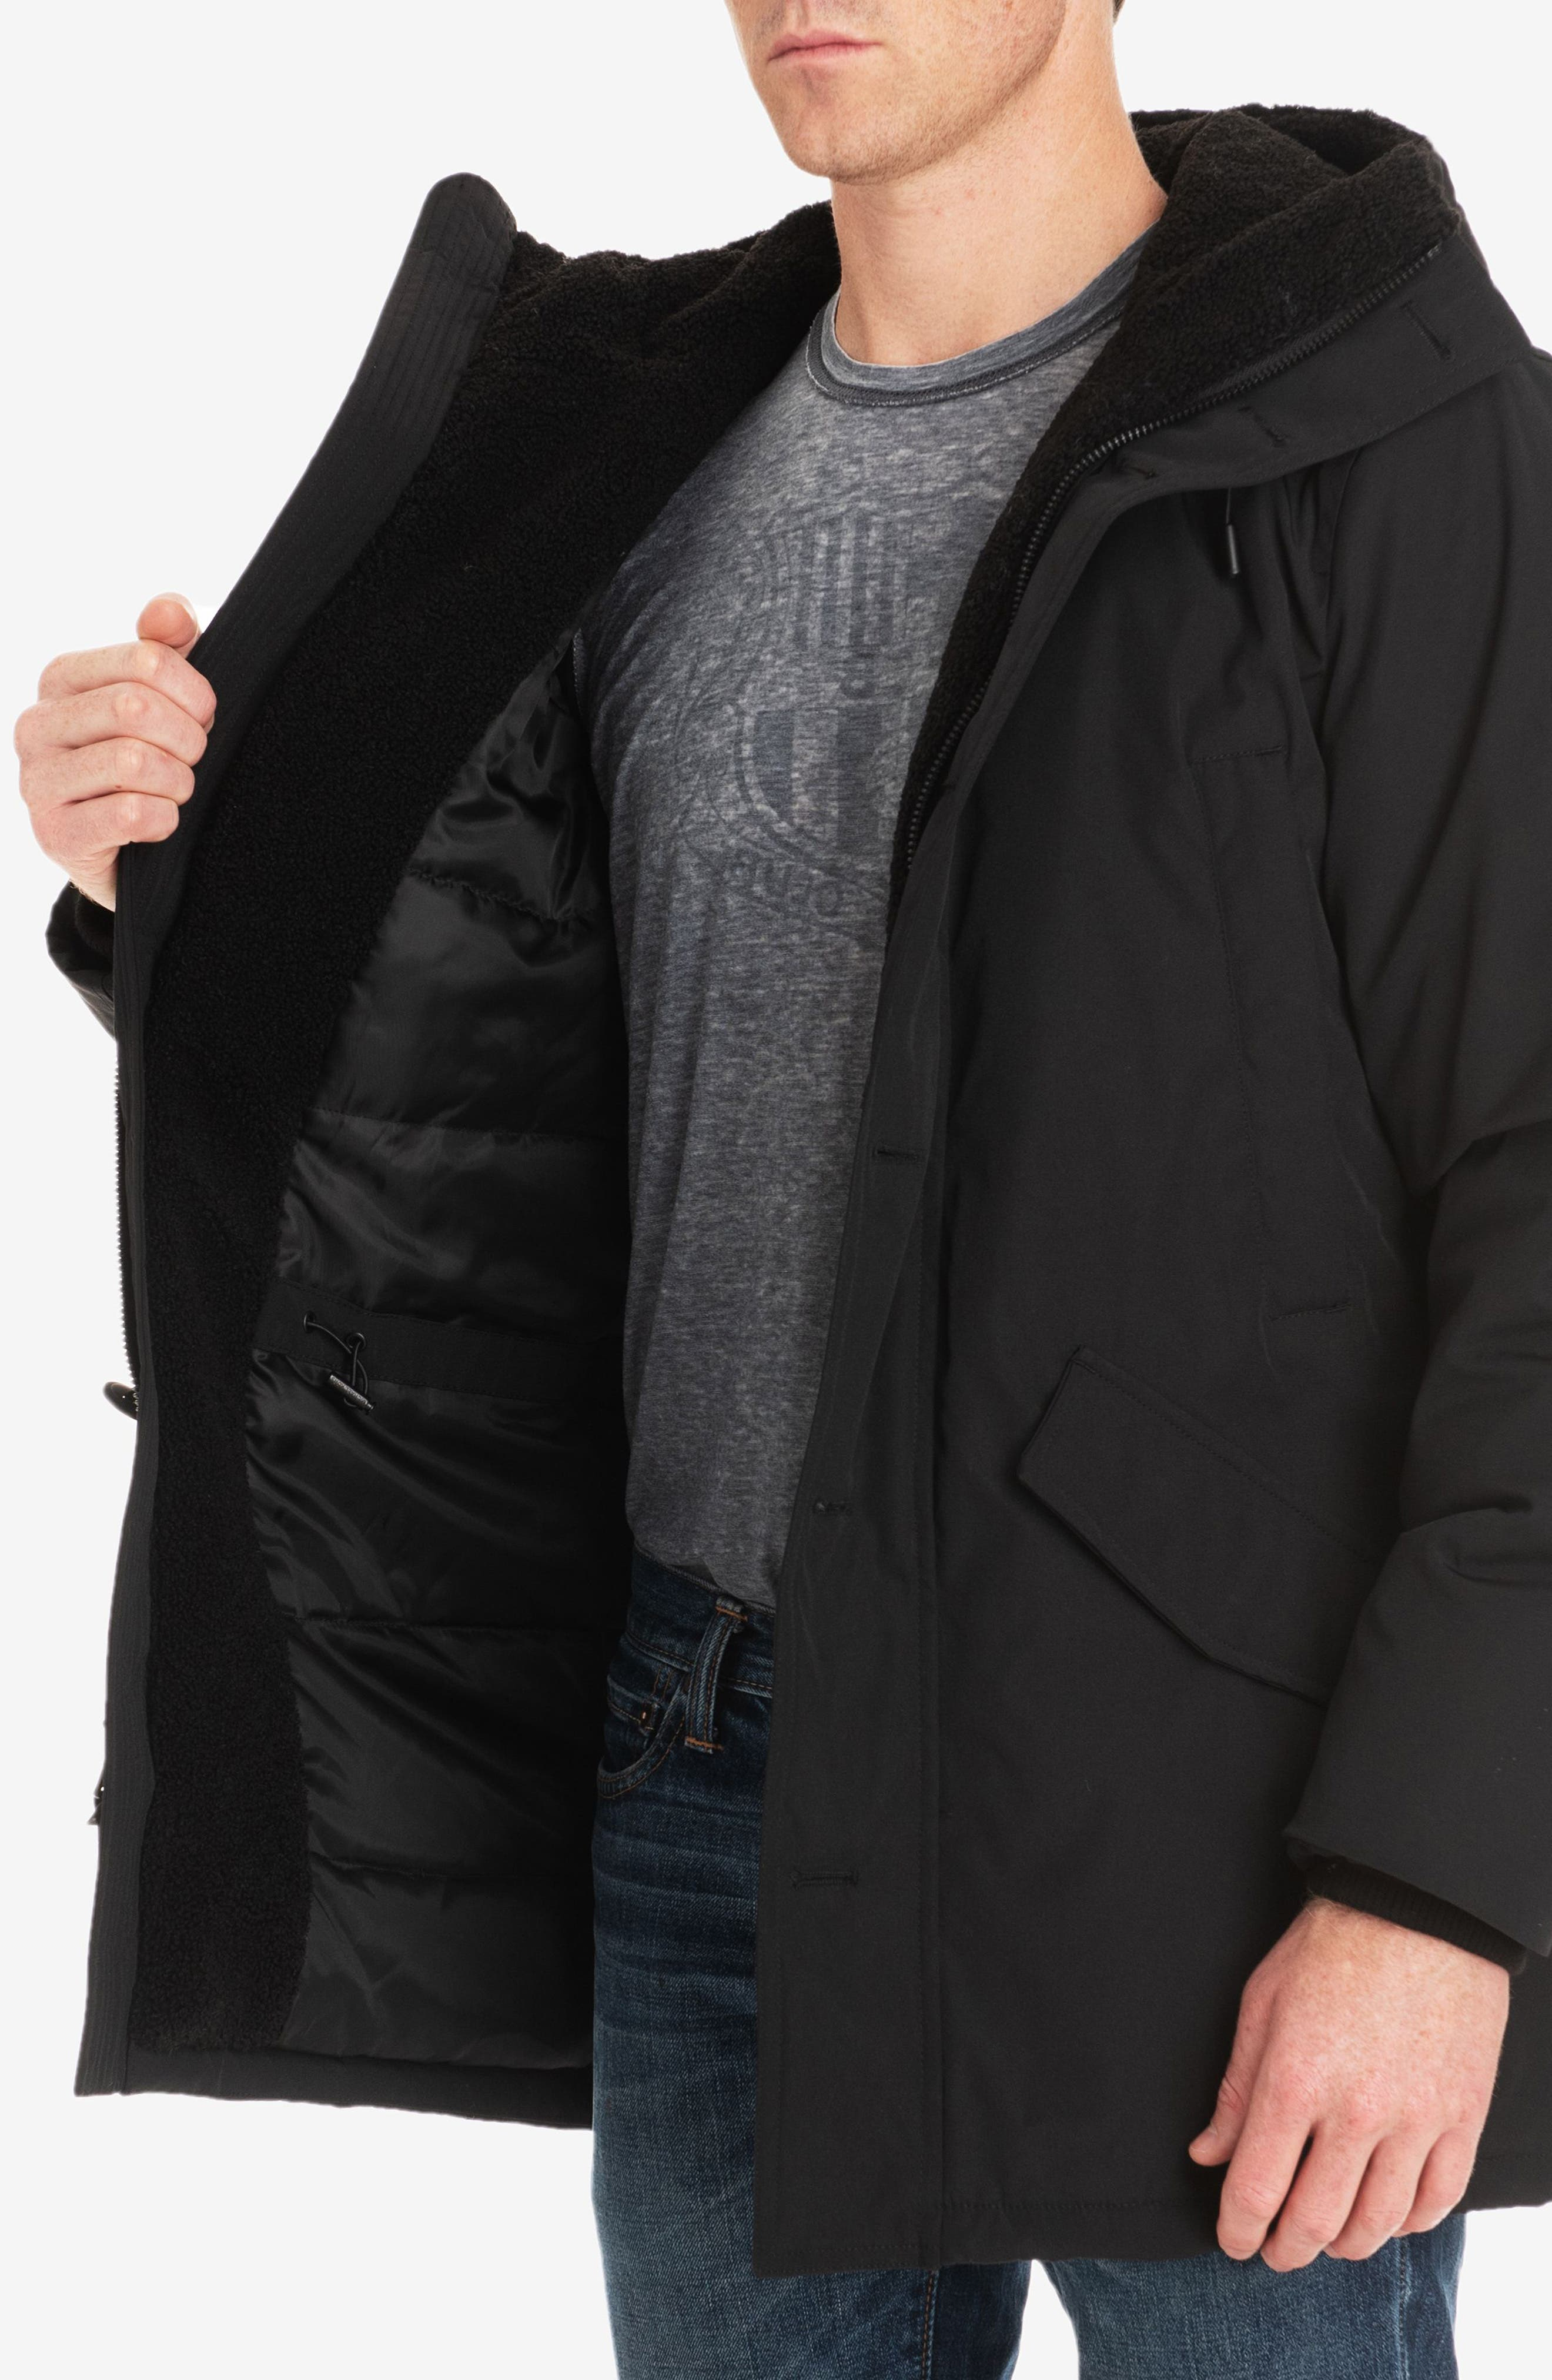 Lafayette Water Resistant Coat with Faux Shearling Lining,                             Alternate thumbnail 4, color,                             BLACK